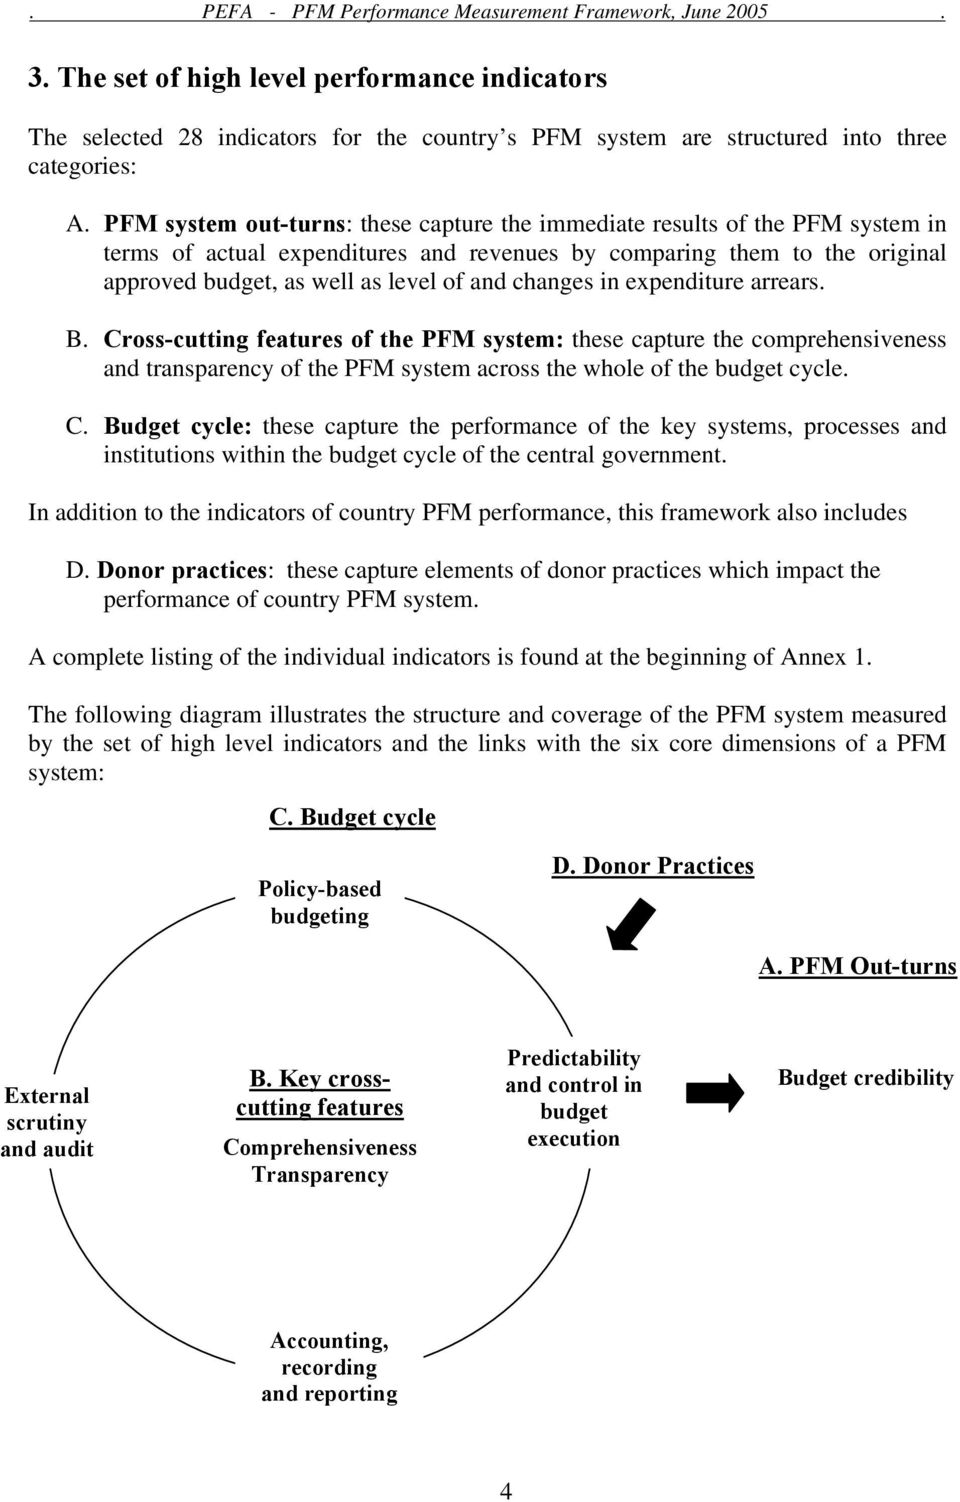 changes in expenditure arrears. B. Cross-cutting features of the PFM system: these capture the comprehensiveness and transparency of the PFM system across the whole of the budget cycle. C. Budget cycle: these capture the performance of the key systems, processes and institutions within the budget cycle of the central government.